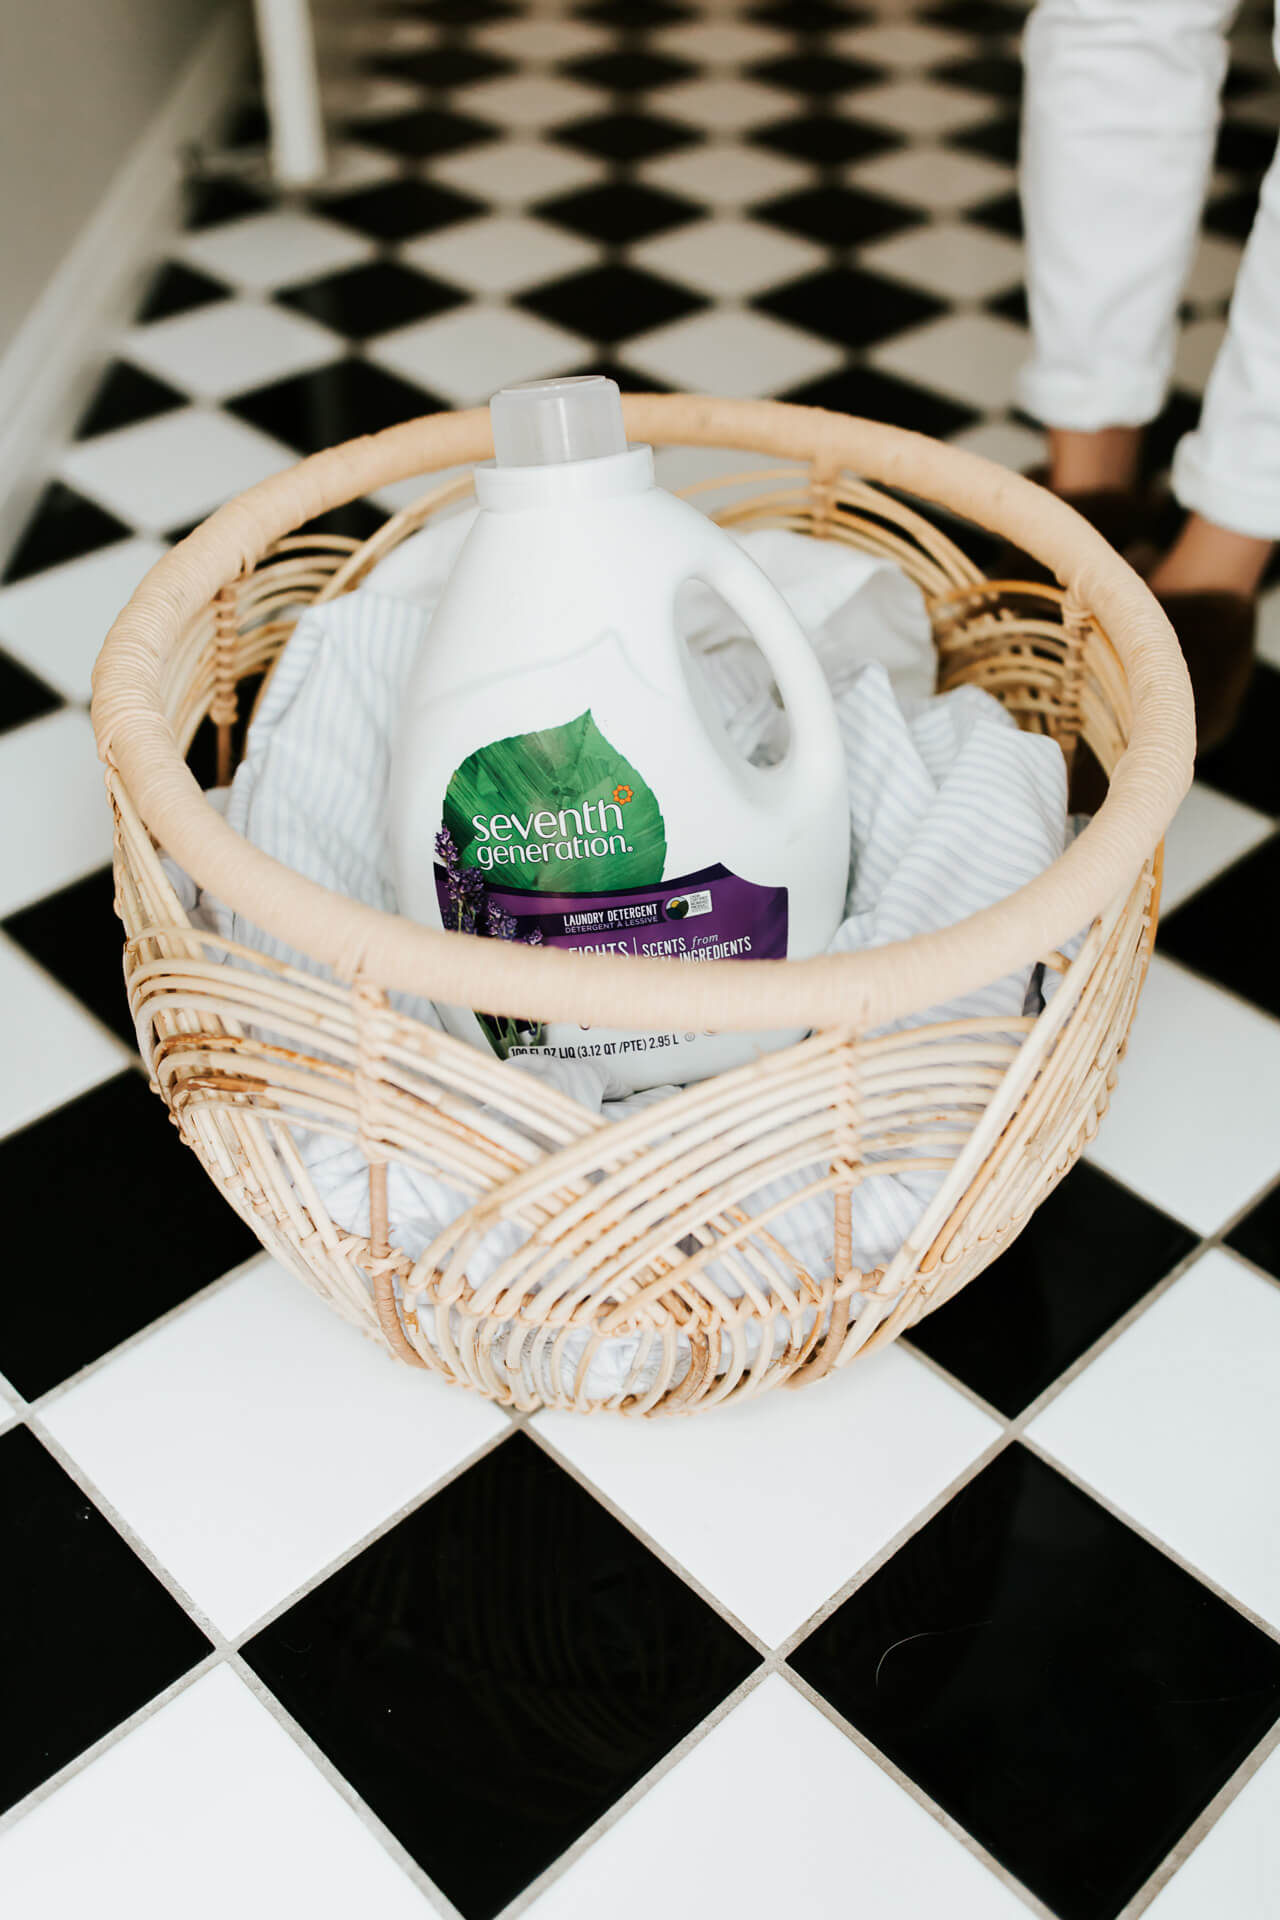 recently started using and loving this seventh generation detergent